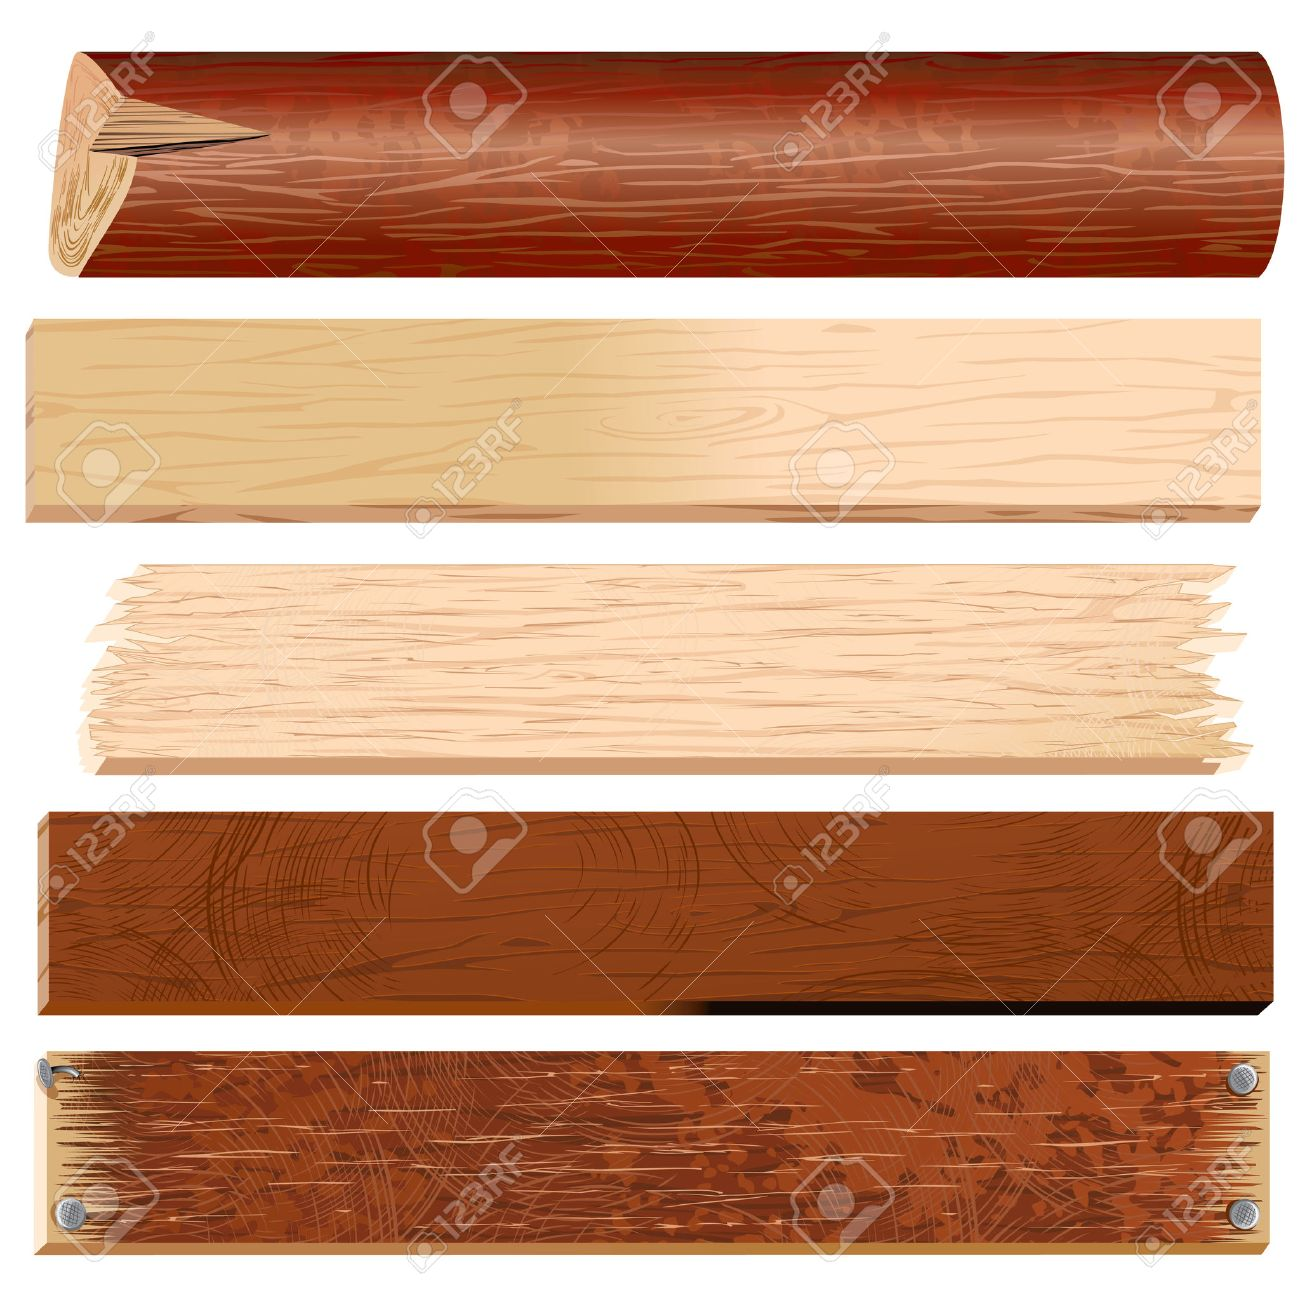 Wooden Planks, Boards, Logs, Panels  timber collection Stock Vector - 7913078